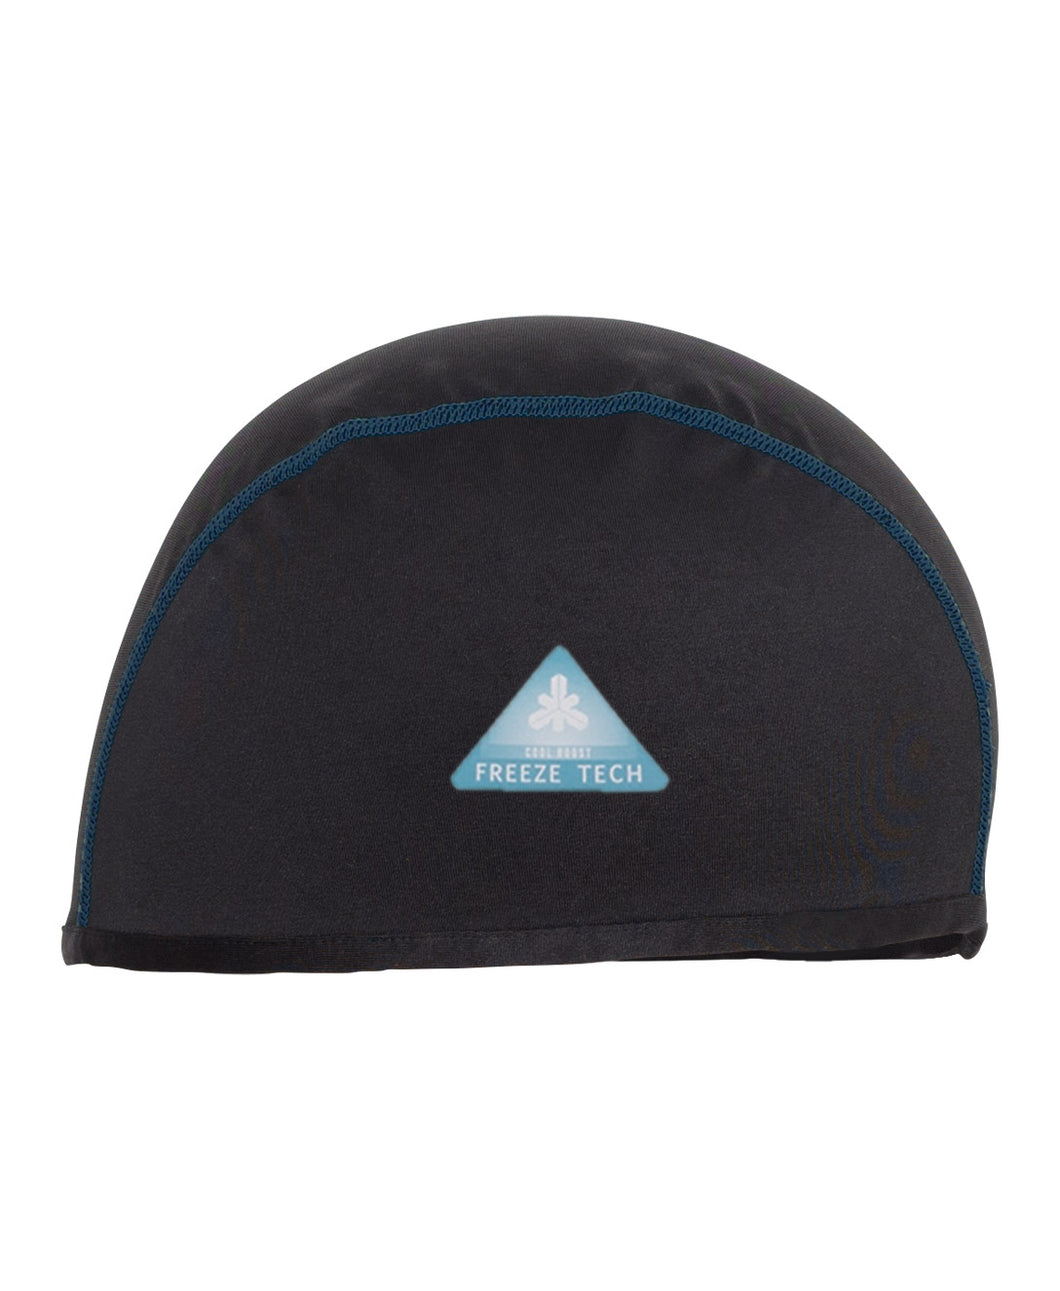 Freeze Tech Cooling Inner Cap, Black- Ice Effect for Hot Weather/ Fast Dry/ AntiOdor / AntiUV